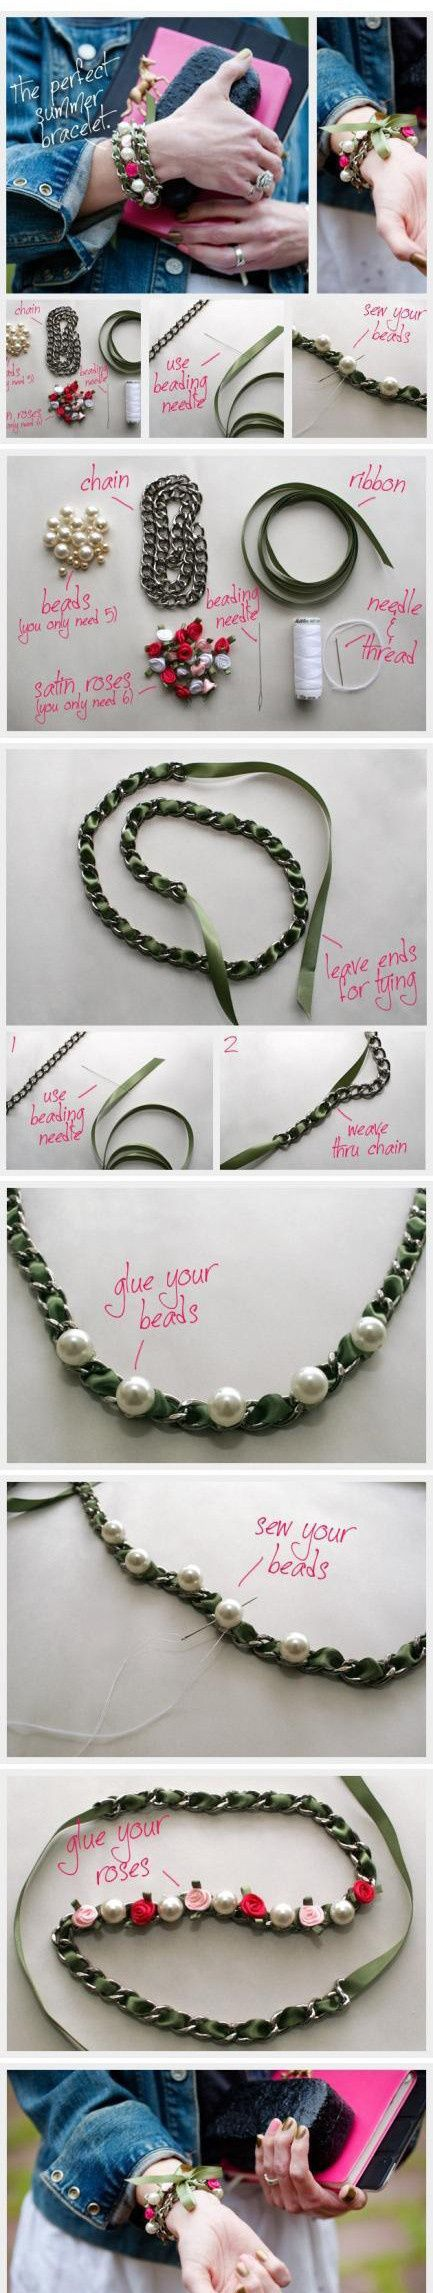 : Ideas, Diy'S, Diy Jewelry, Diy Craft, Diy Bracelet, Summer Bracelets